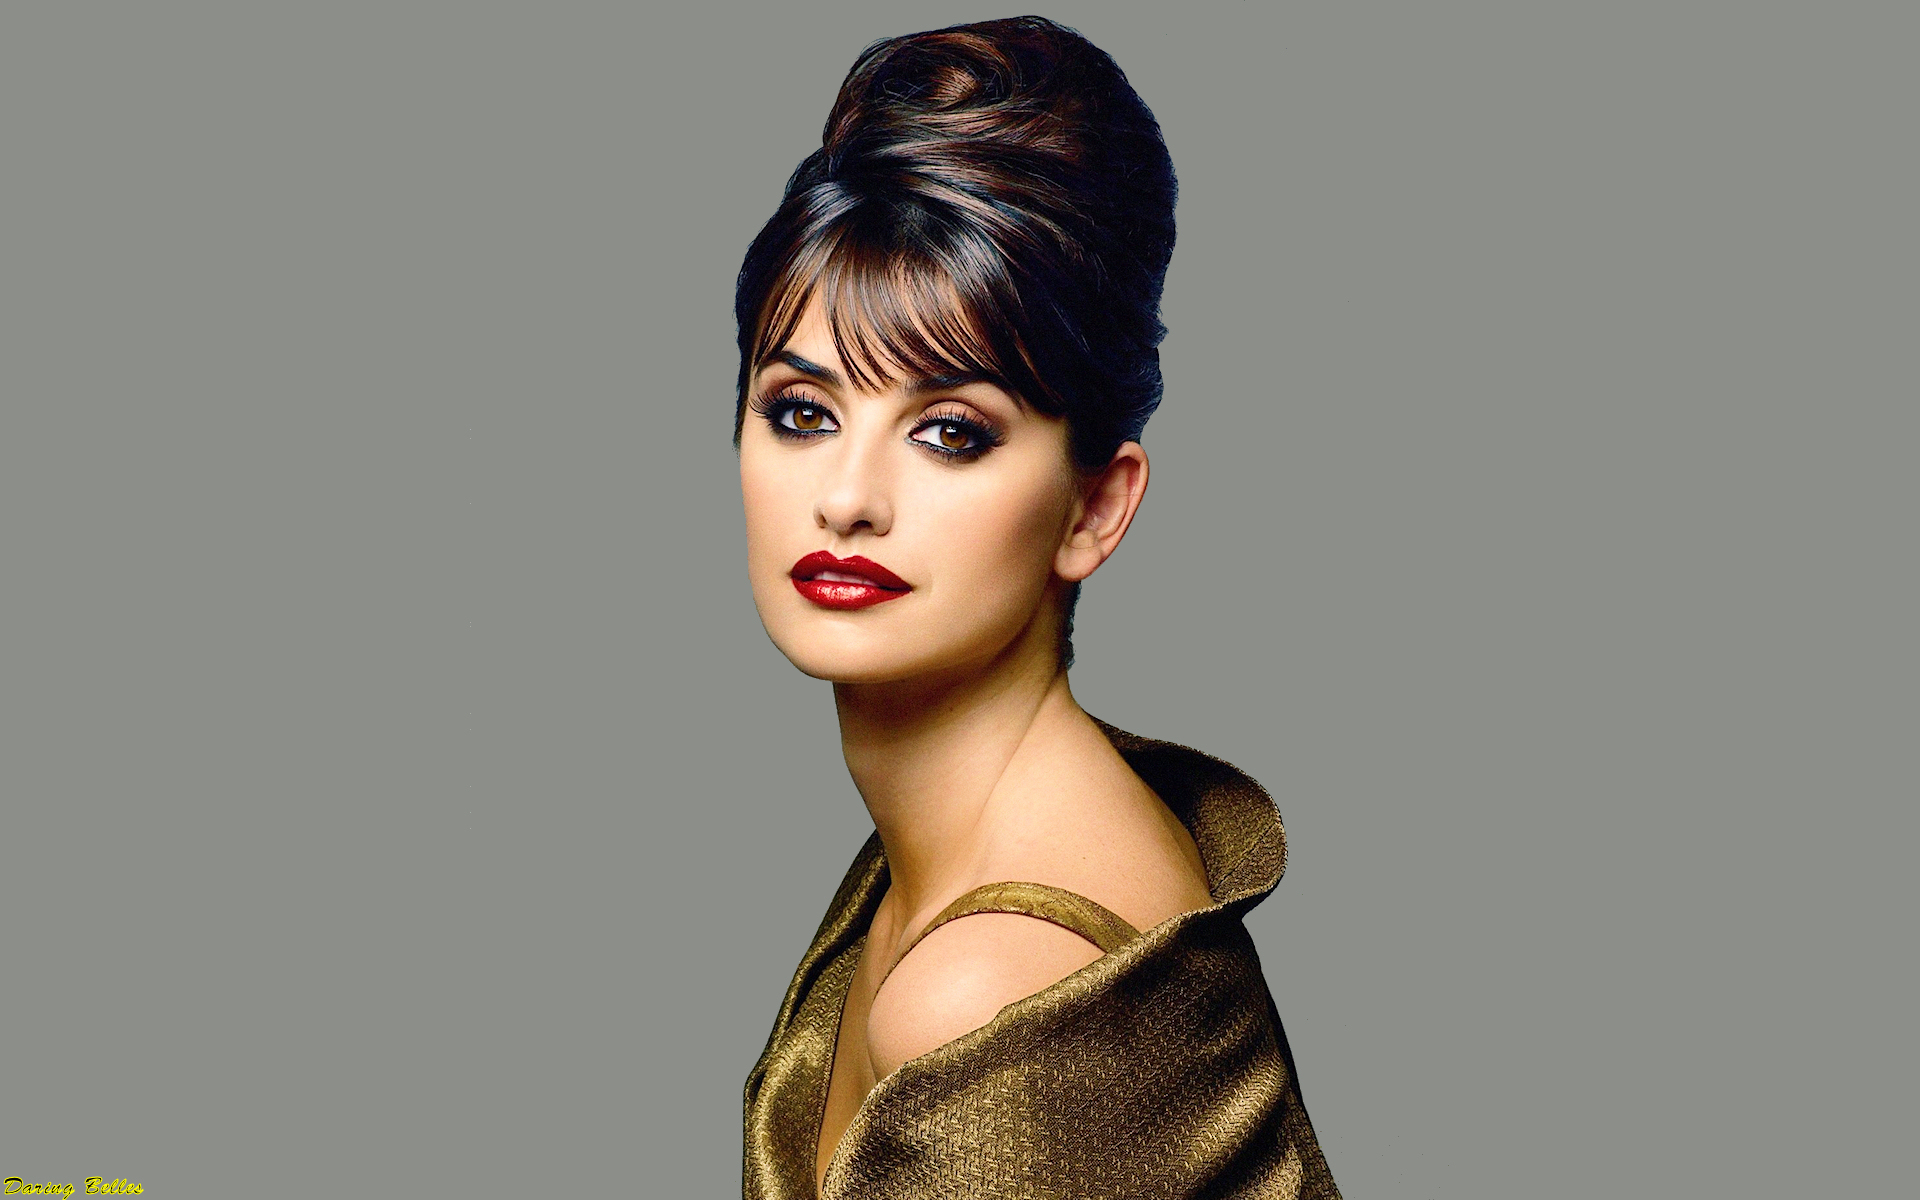 http://images4.fanpop.com/image/photos/16300000/Penelope-Cruz-Wallpaper-penelope-cruz-16376579-1920-1200.jpg